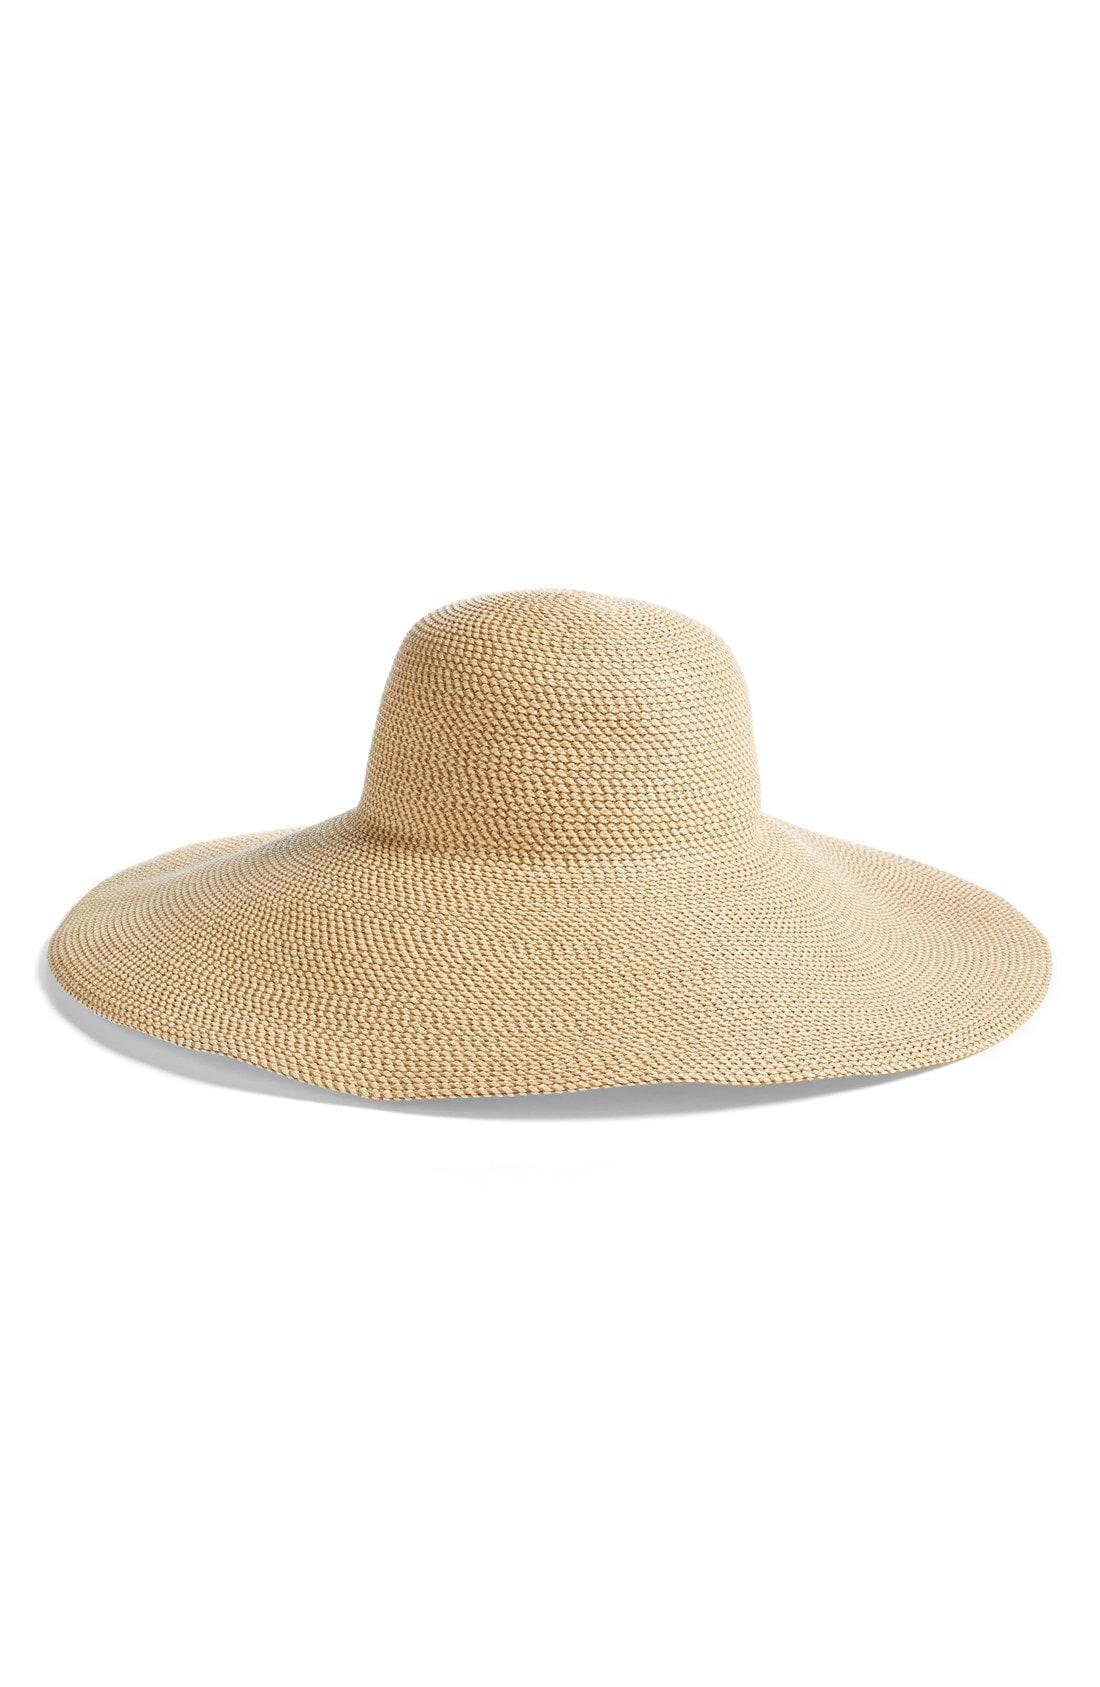 a590bcfbc2e Lyst - Eric Javits Floppy Straw Hat in Natural